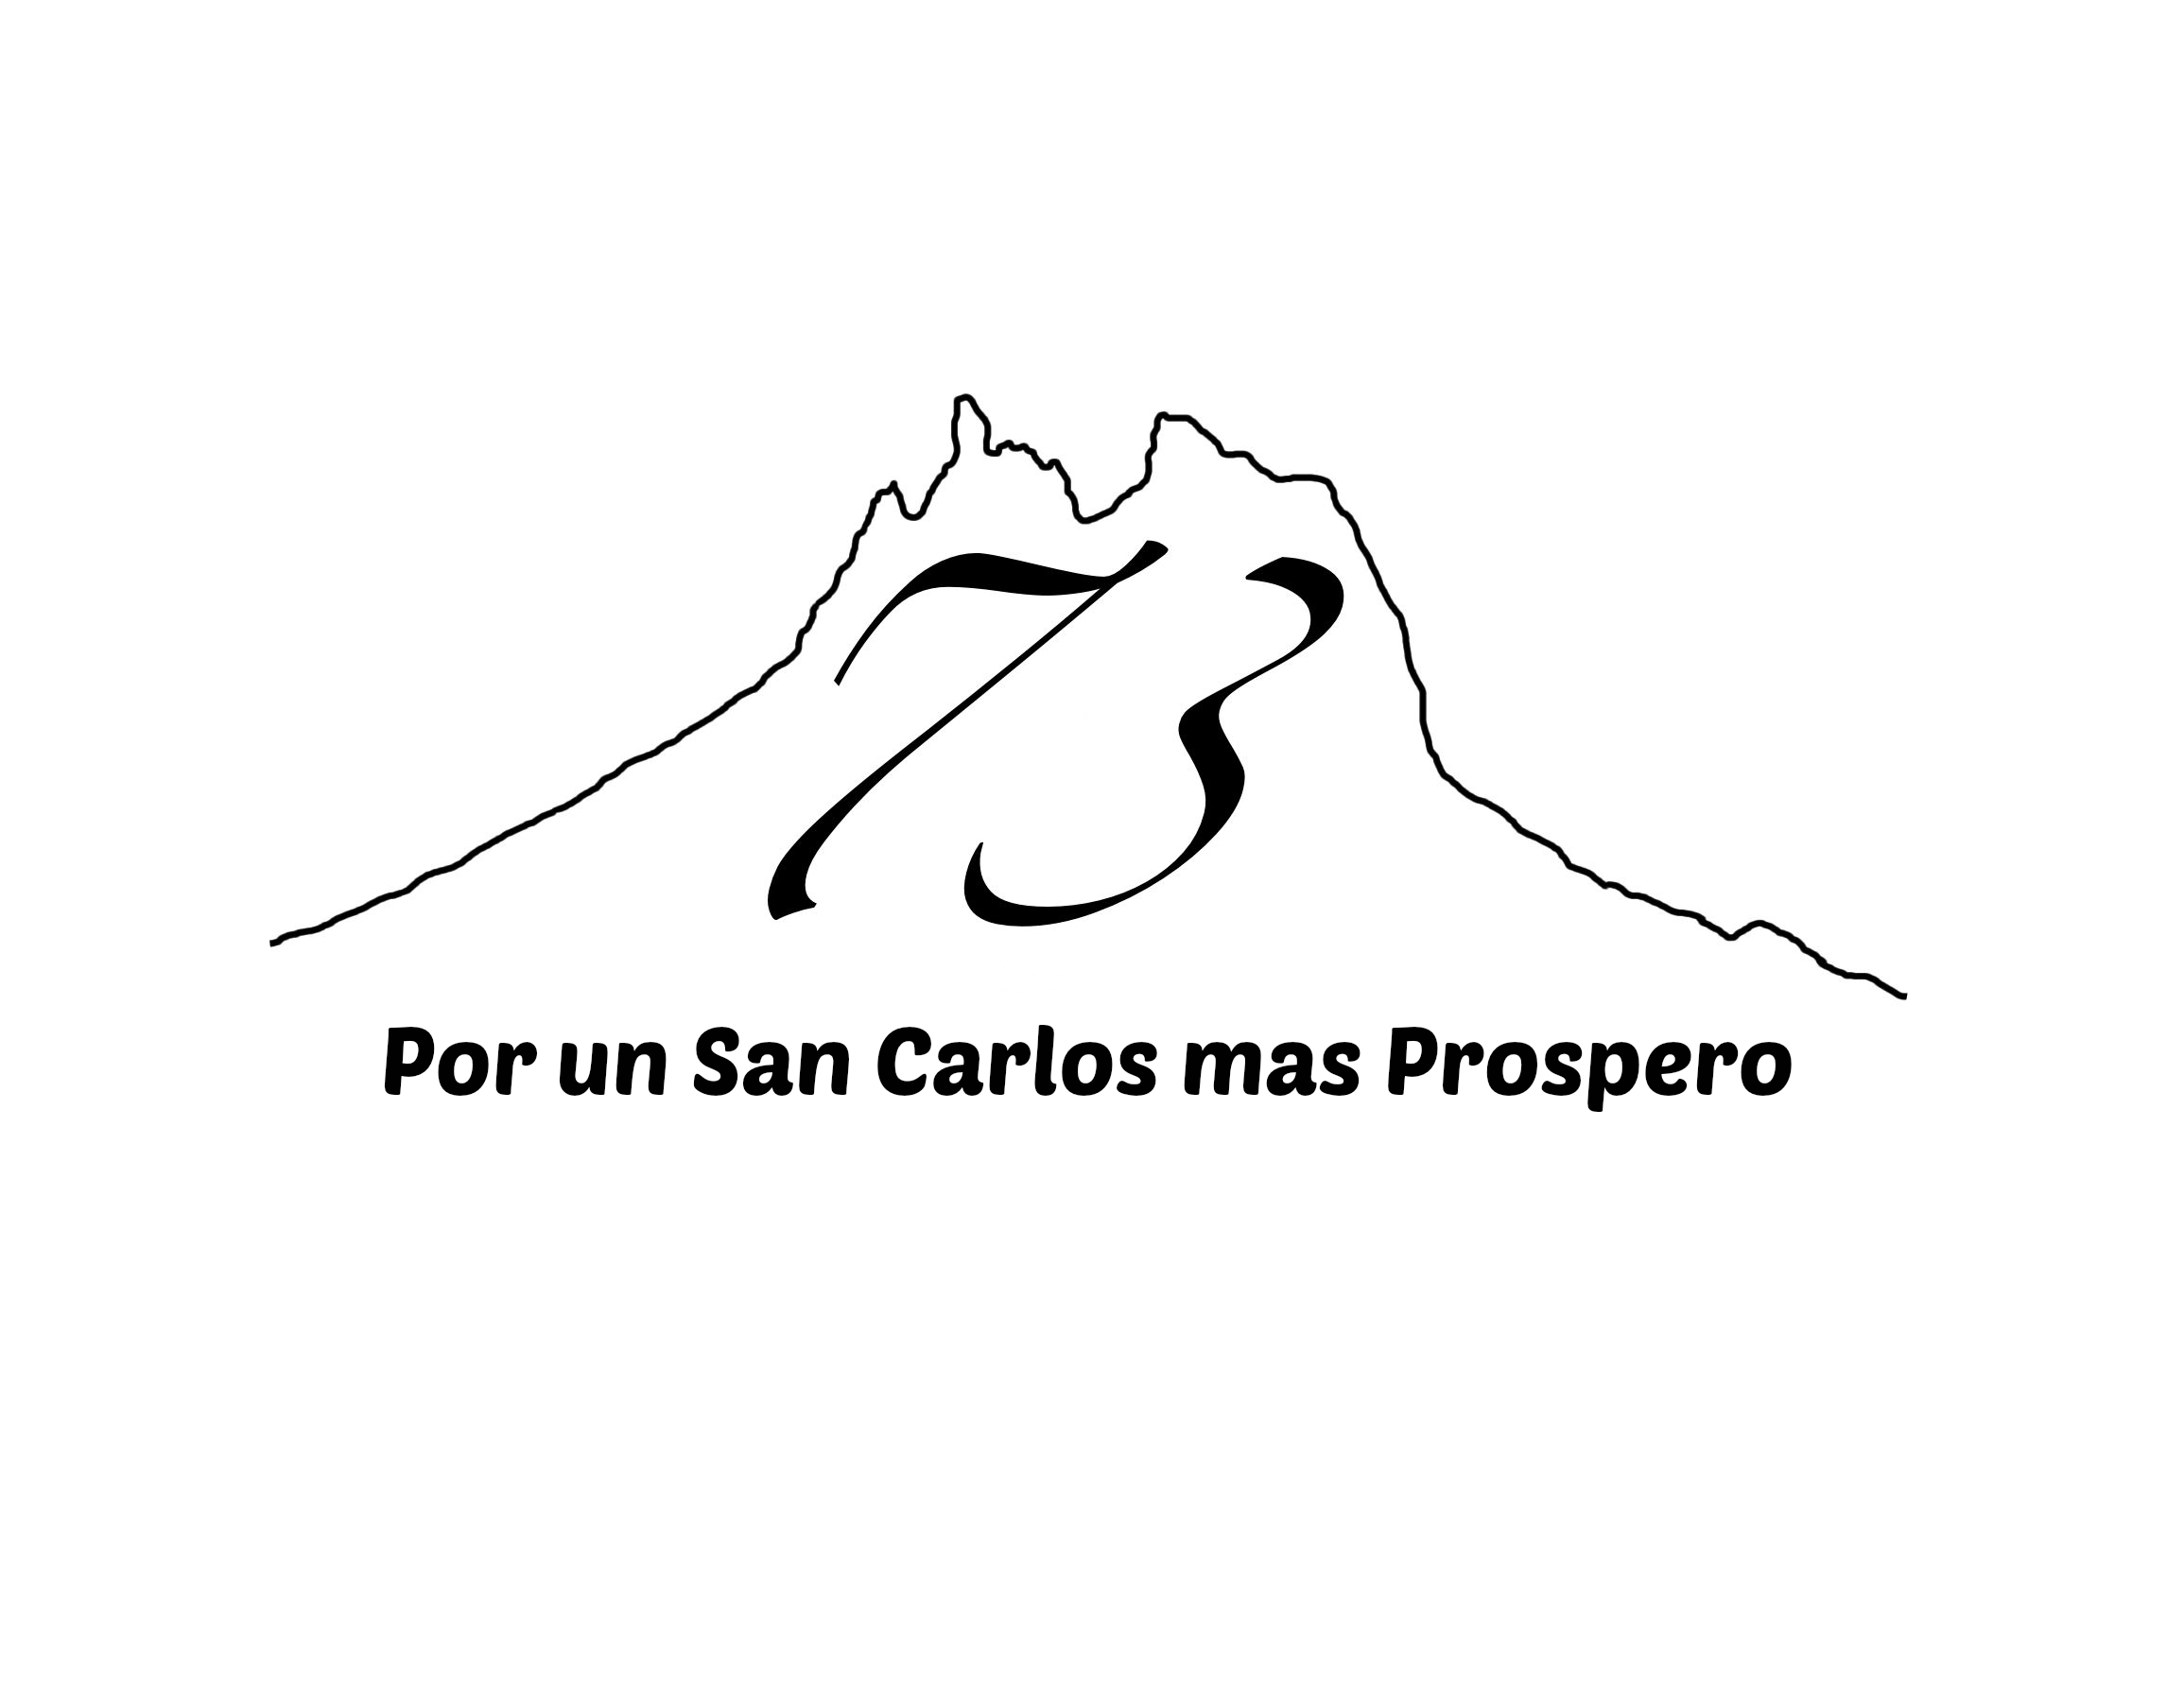 There is a growing grass roots movement in San Carlos to break away from Guaymas and form its own municipality